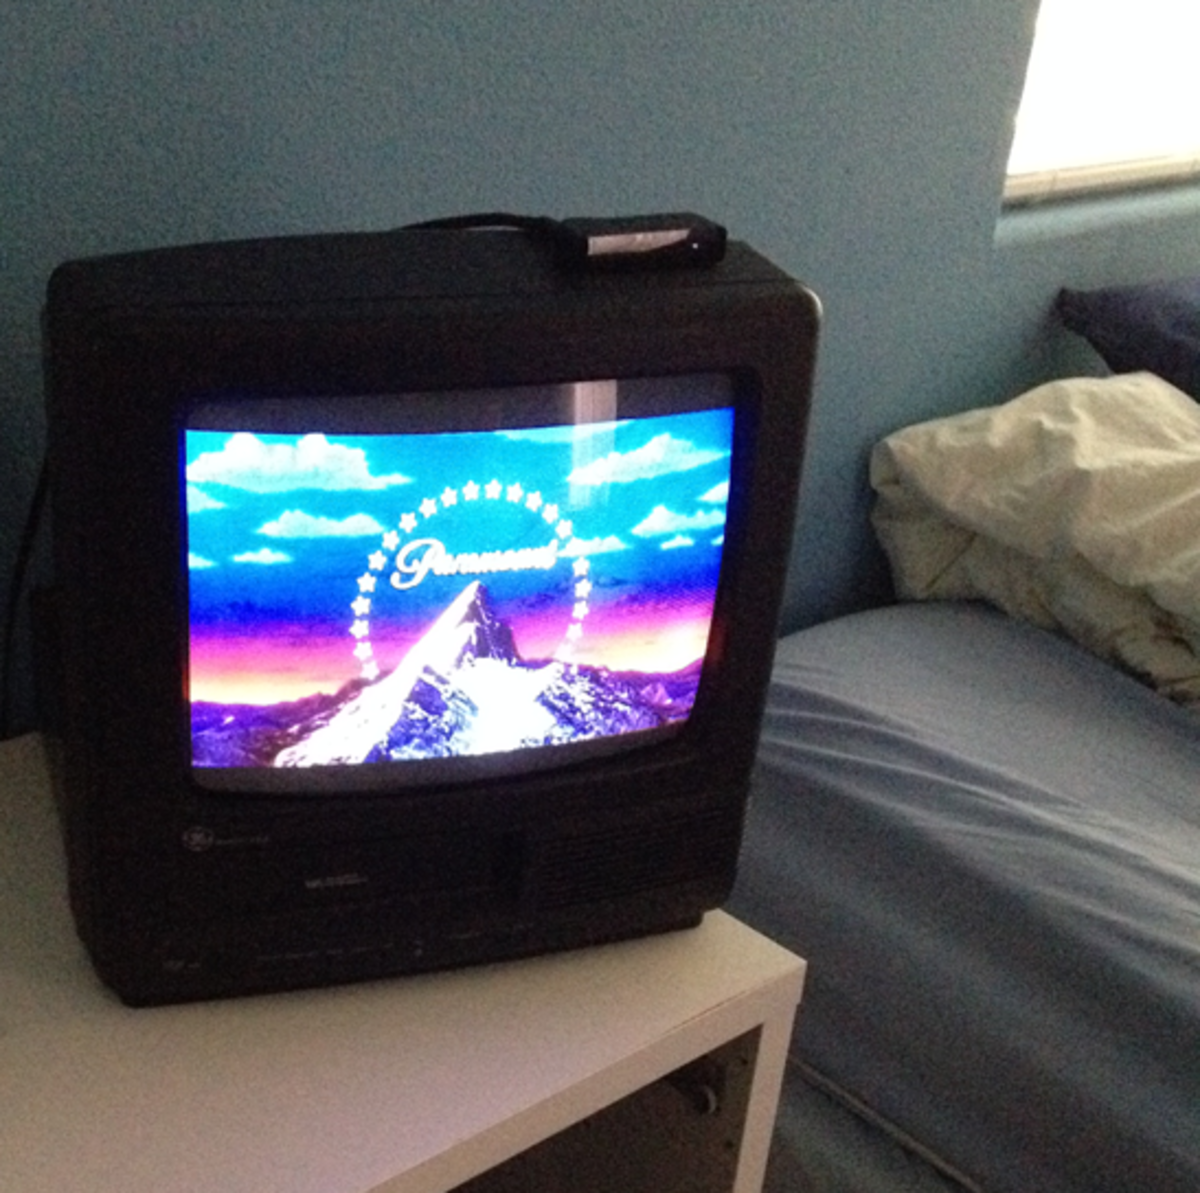 How to Stream to an Old Television (TV set) | HubPages